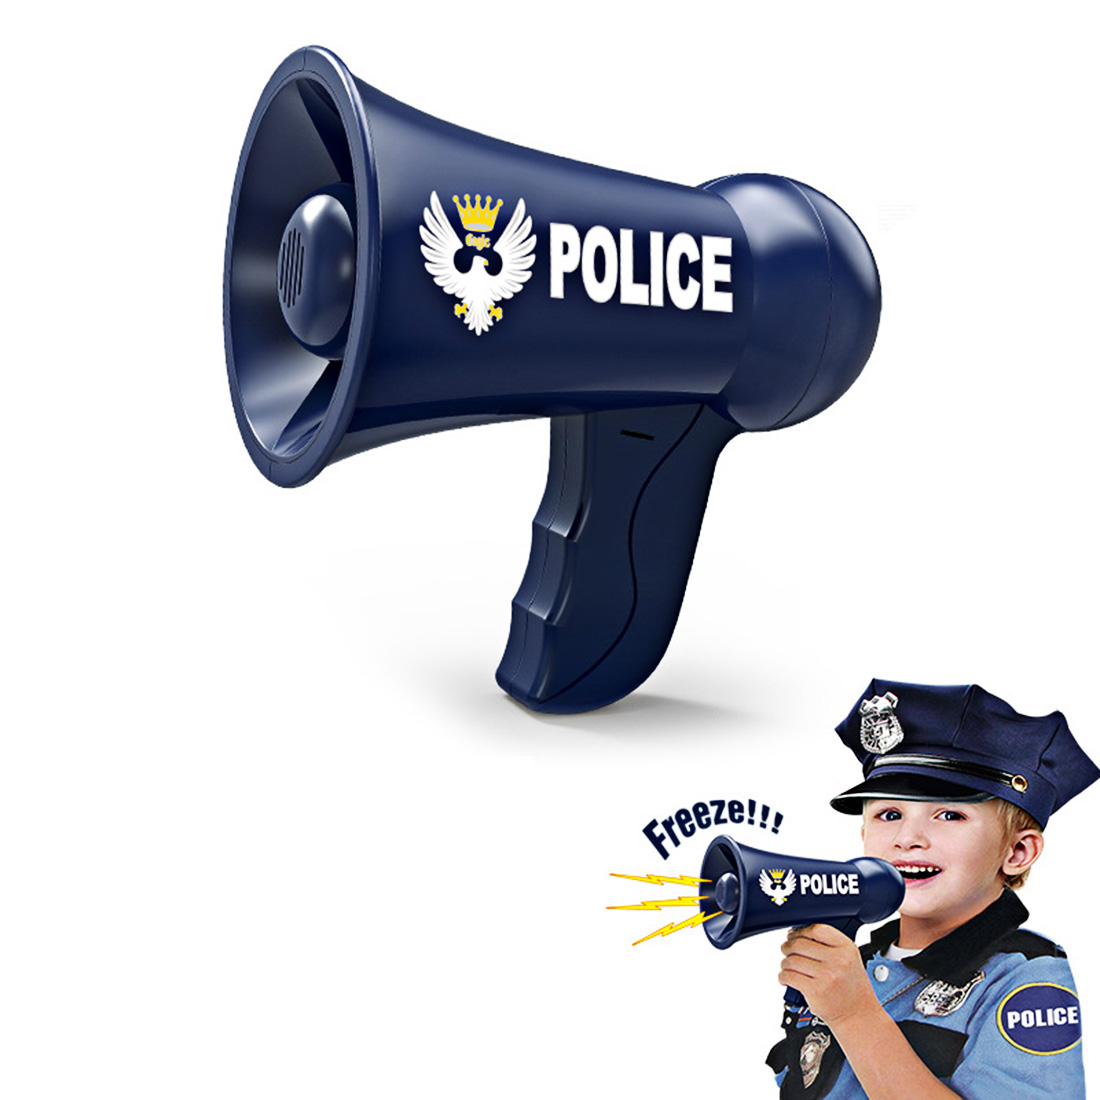 Surwish Children Role Play Toy Battery Powered <font><b>Police</b></font> Megaphone <font><b>Police</b></font> Play Set Fro Kids Children New 2019 image